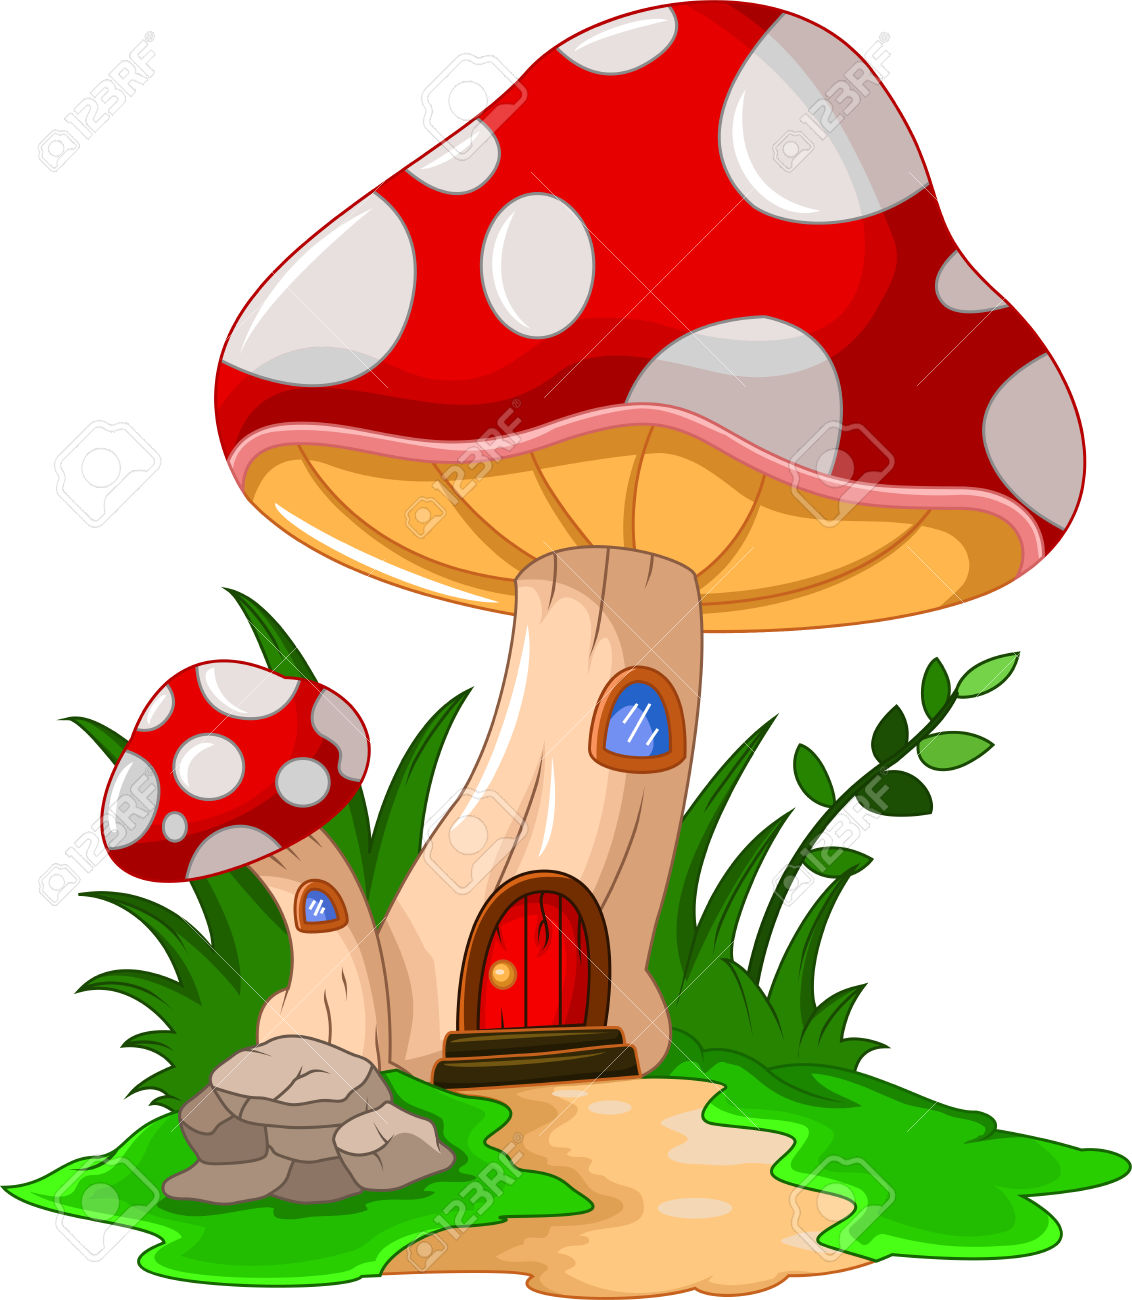 Mushroom clipart #1, Download drawings